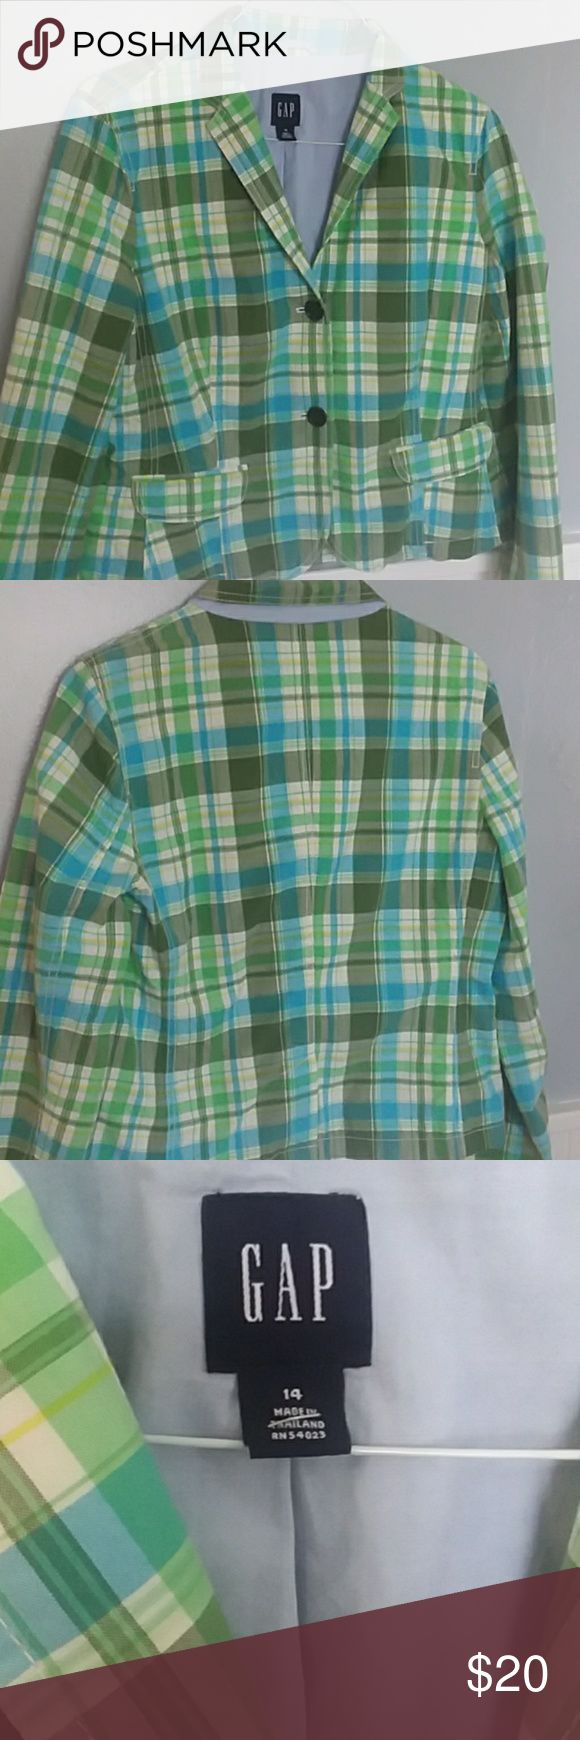 GAP size 14 plaid blazer womens Double pocket blue green plaid, great condition, can wear with jeans or dress pants GAP Jackets & Coats Blazers